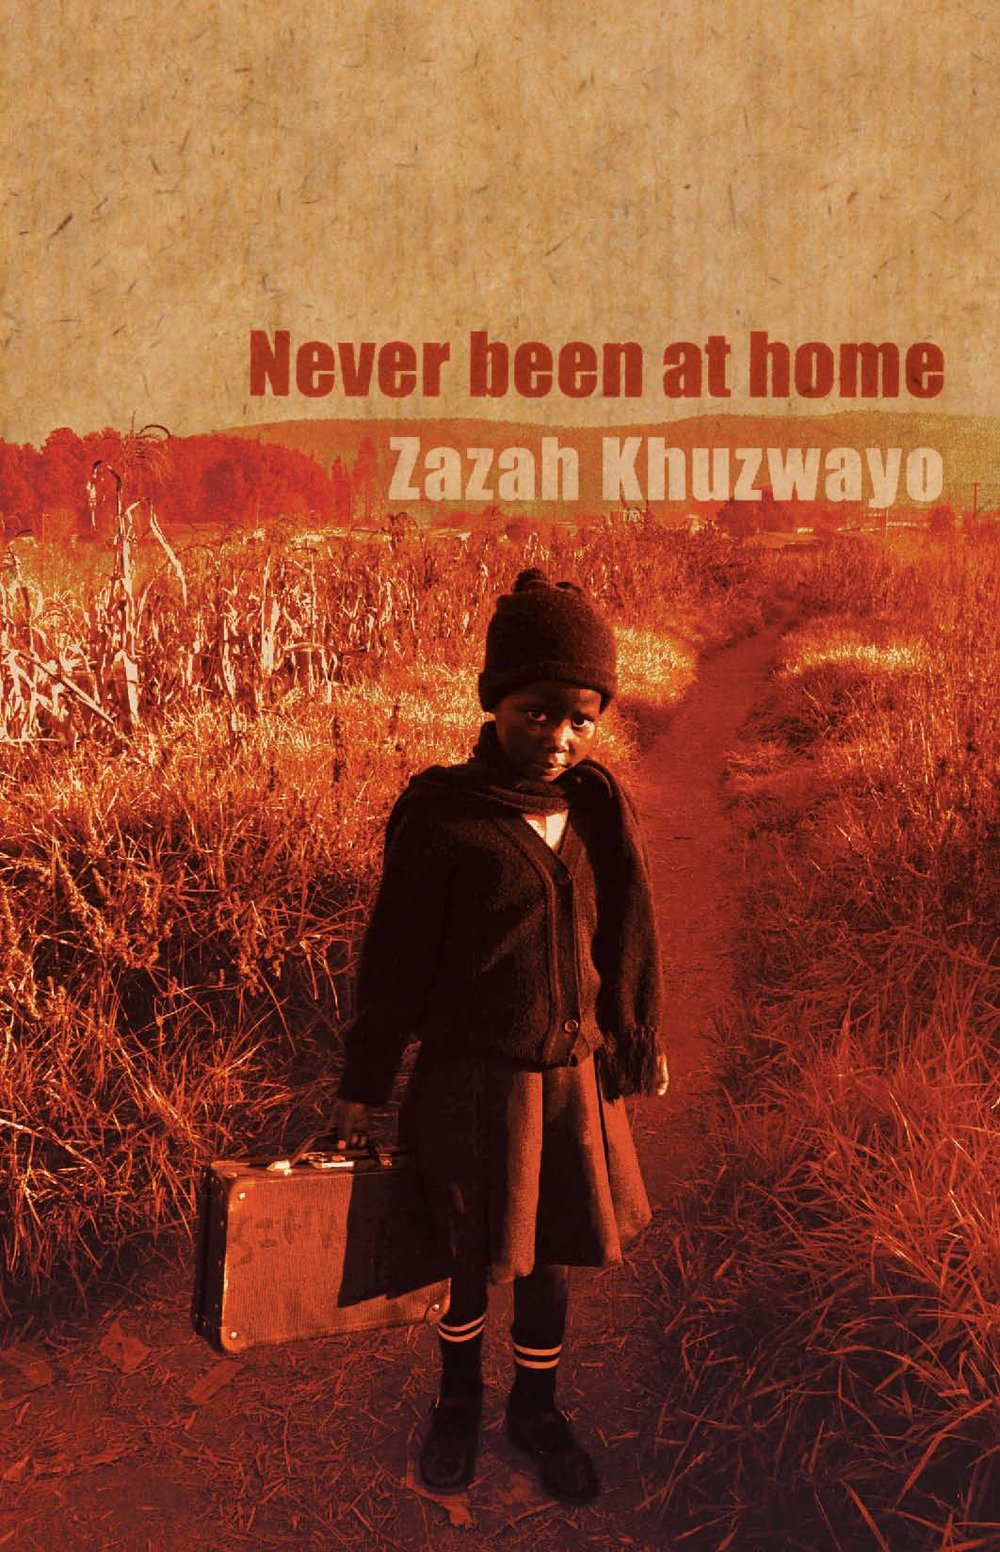 Never been at home - Zazah Khuzwayo